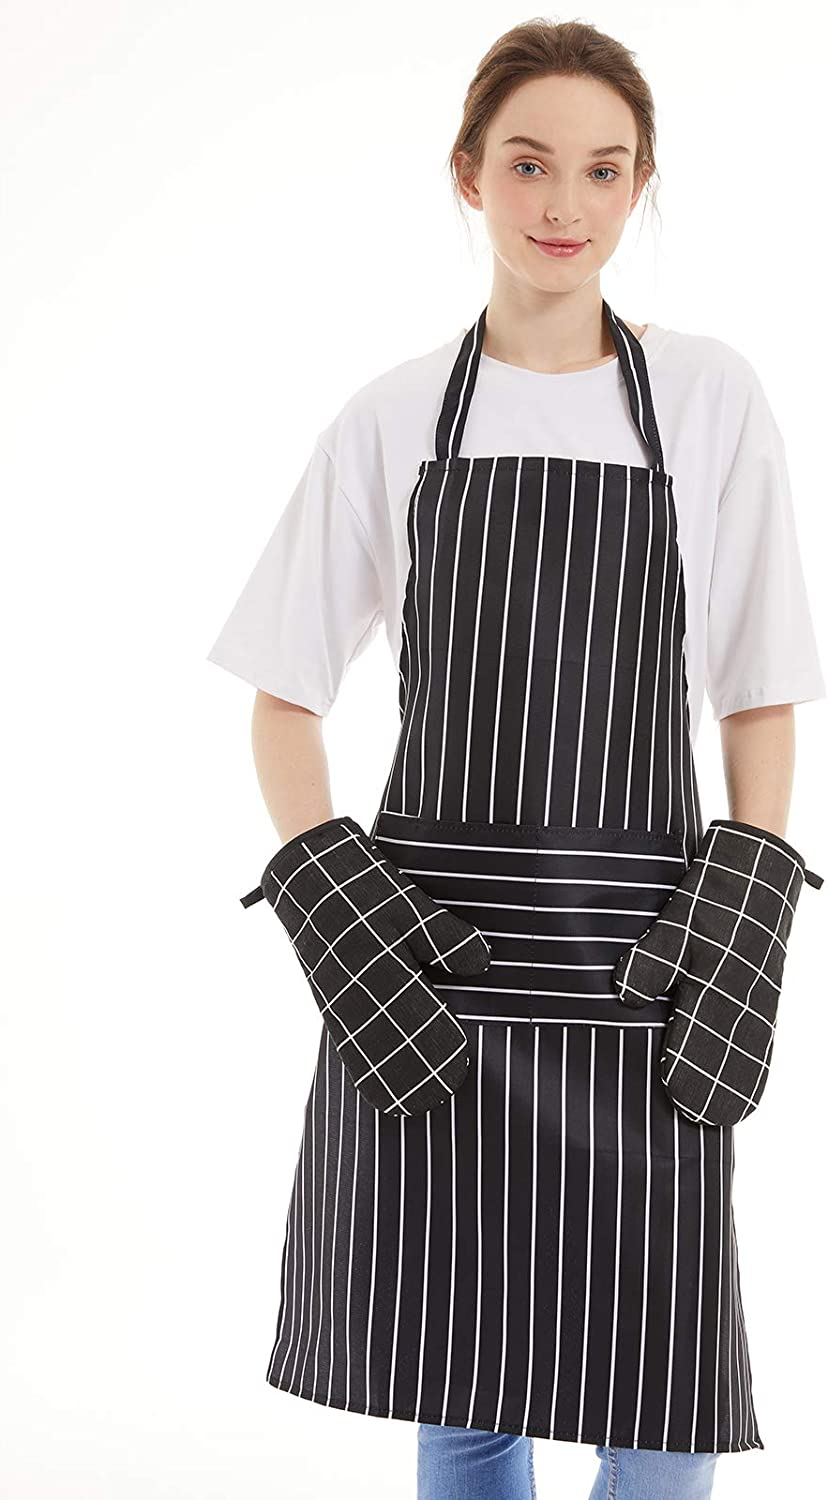 HOMSY Adjustable Bib Apron with Heat for Resistant Oven C Regular store El Paso Mall Gloves